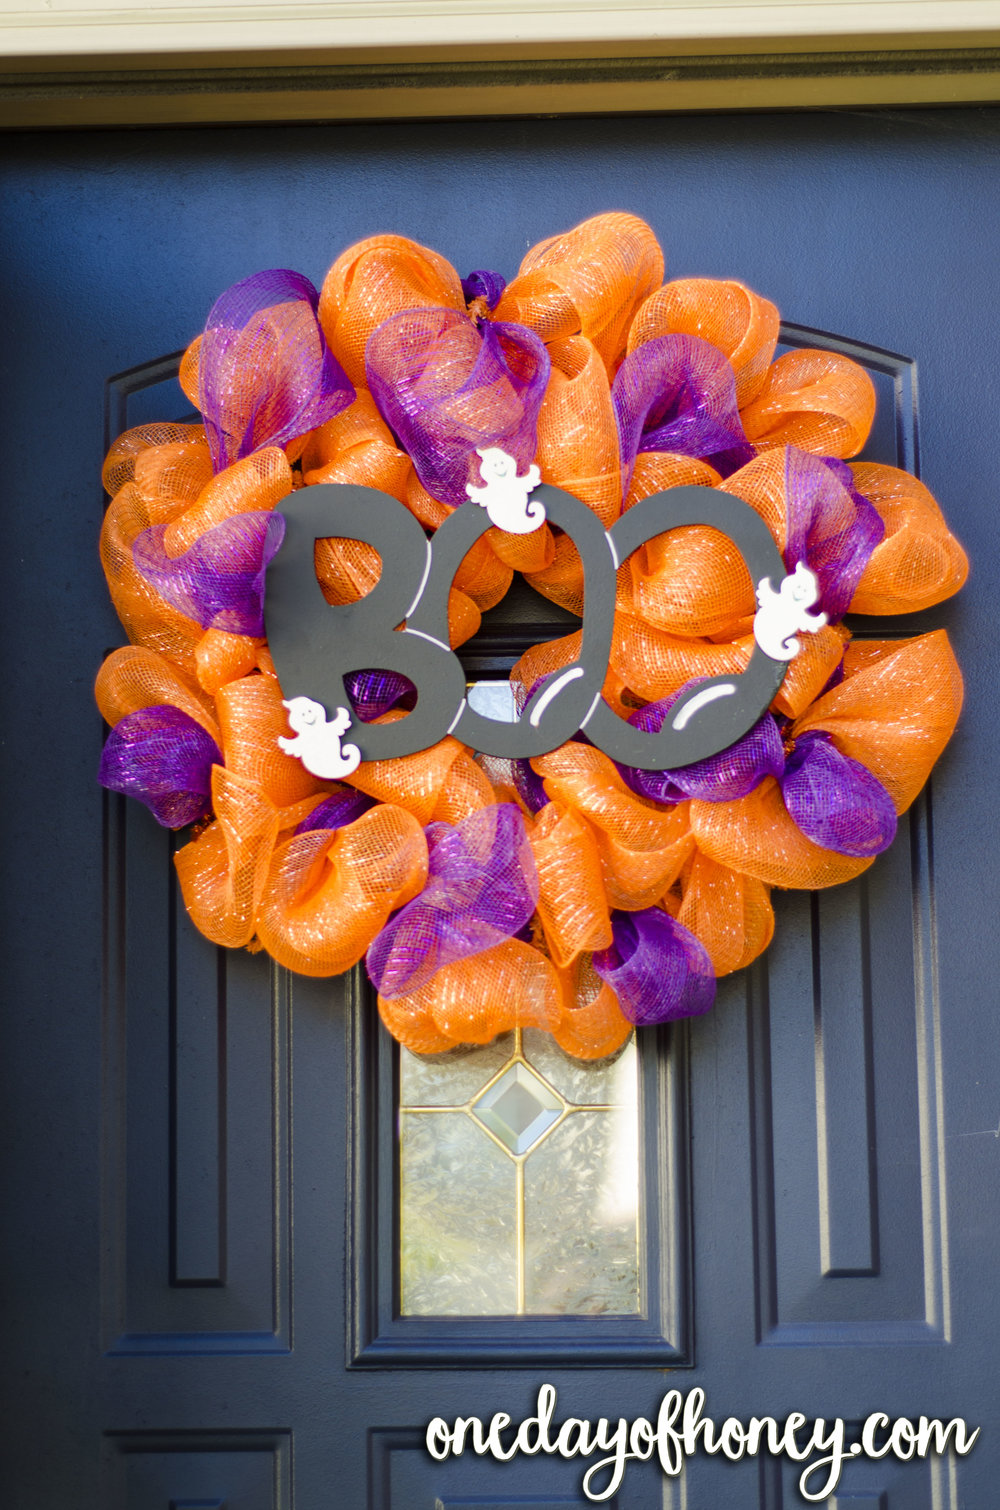 How to Easily Create a Decorative Mesh Ribbon Wreath Now! Click here:http://bit.ly/meshribbonwreath8.